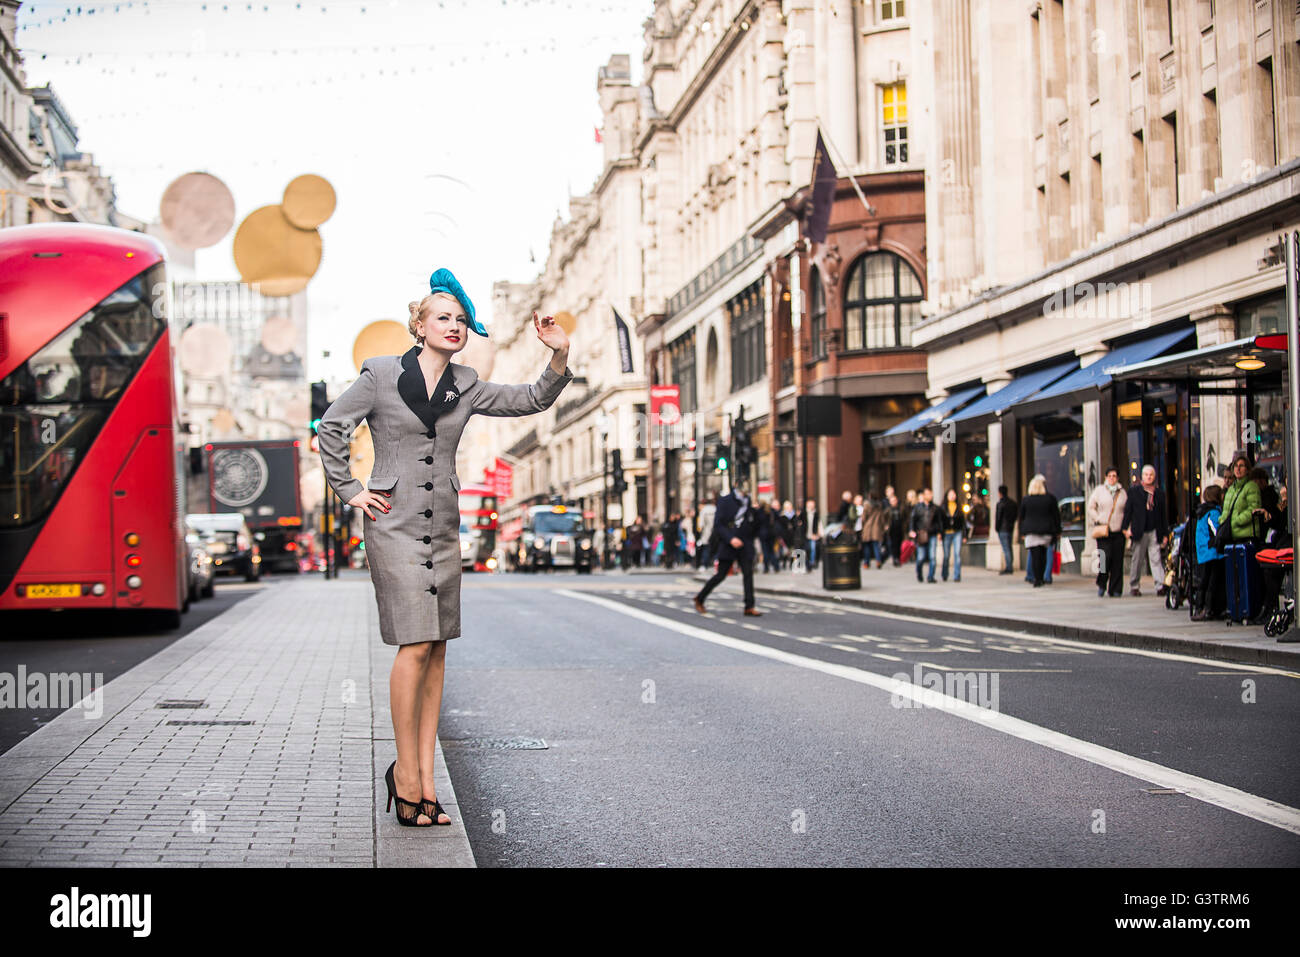 A stylish young woman dressed in 1930s style clothing hailing a taxi on Regent Street in London. - Stock Image